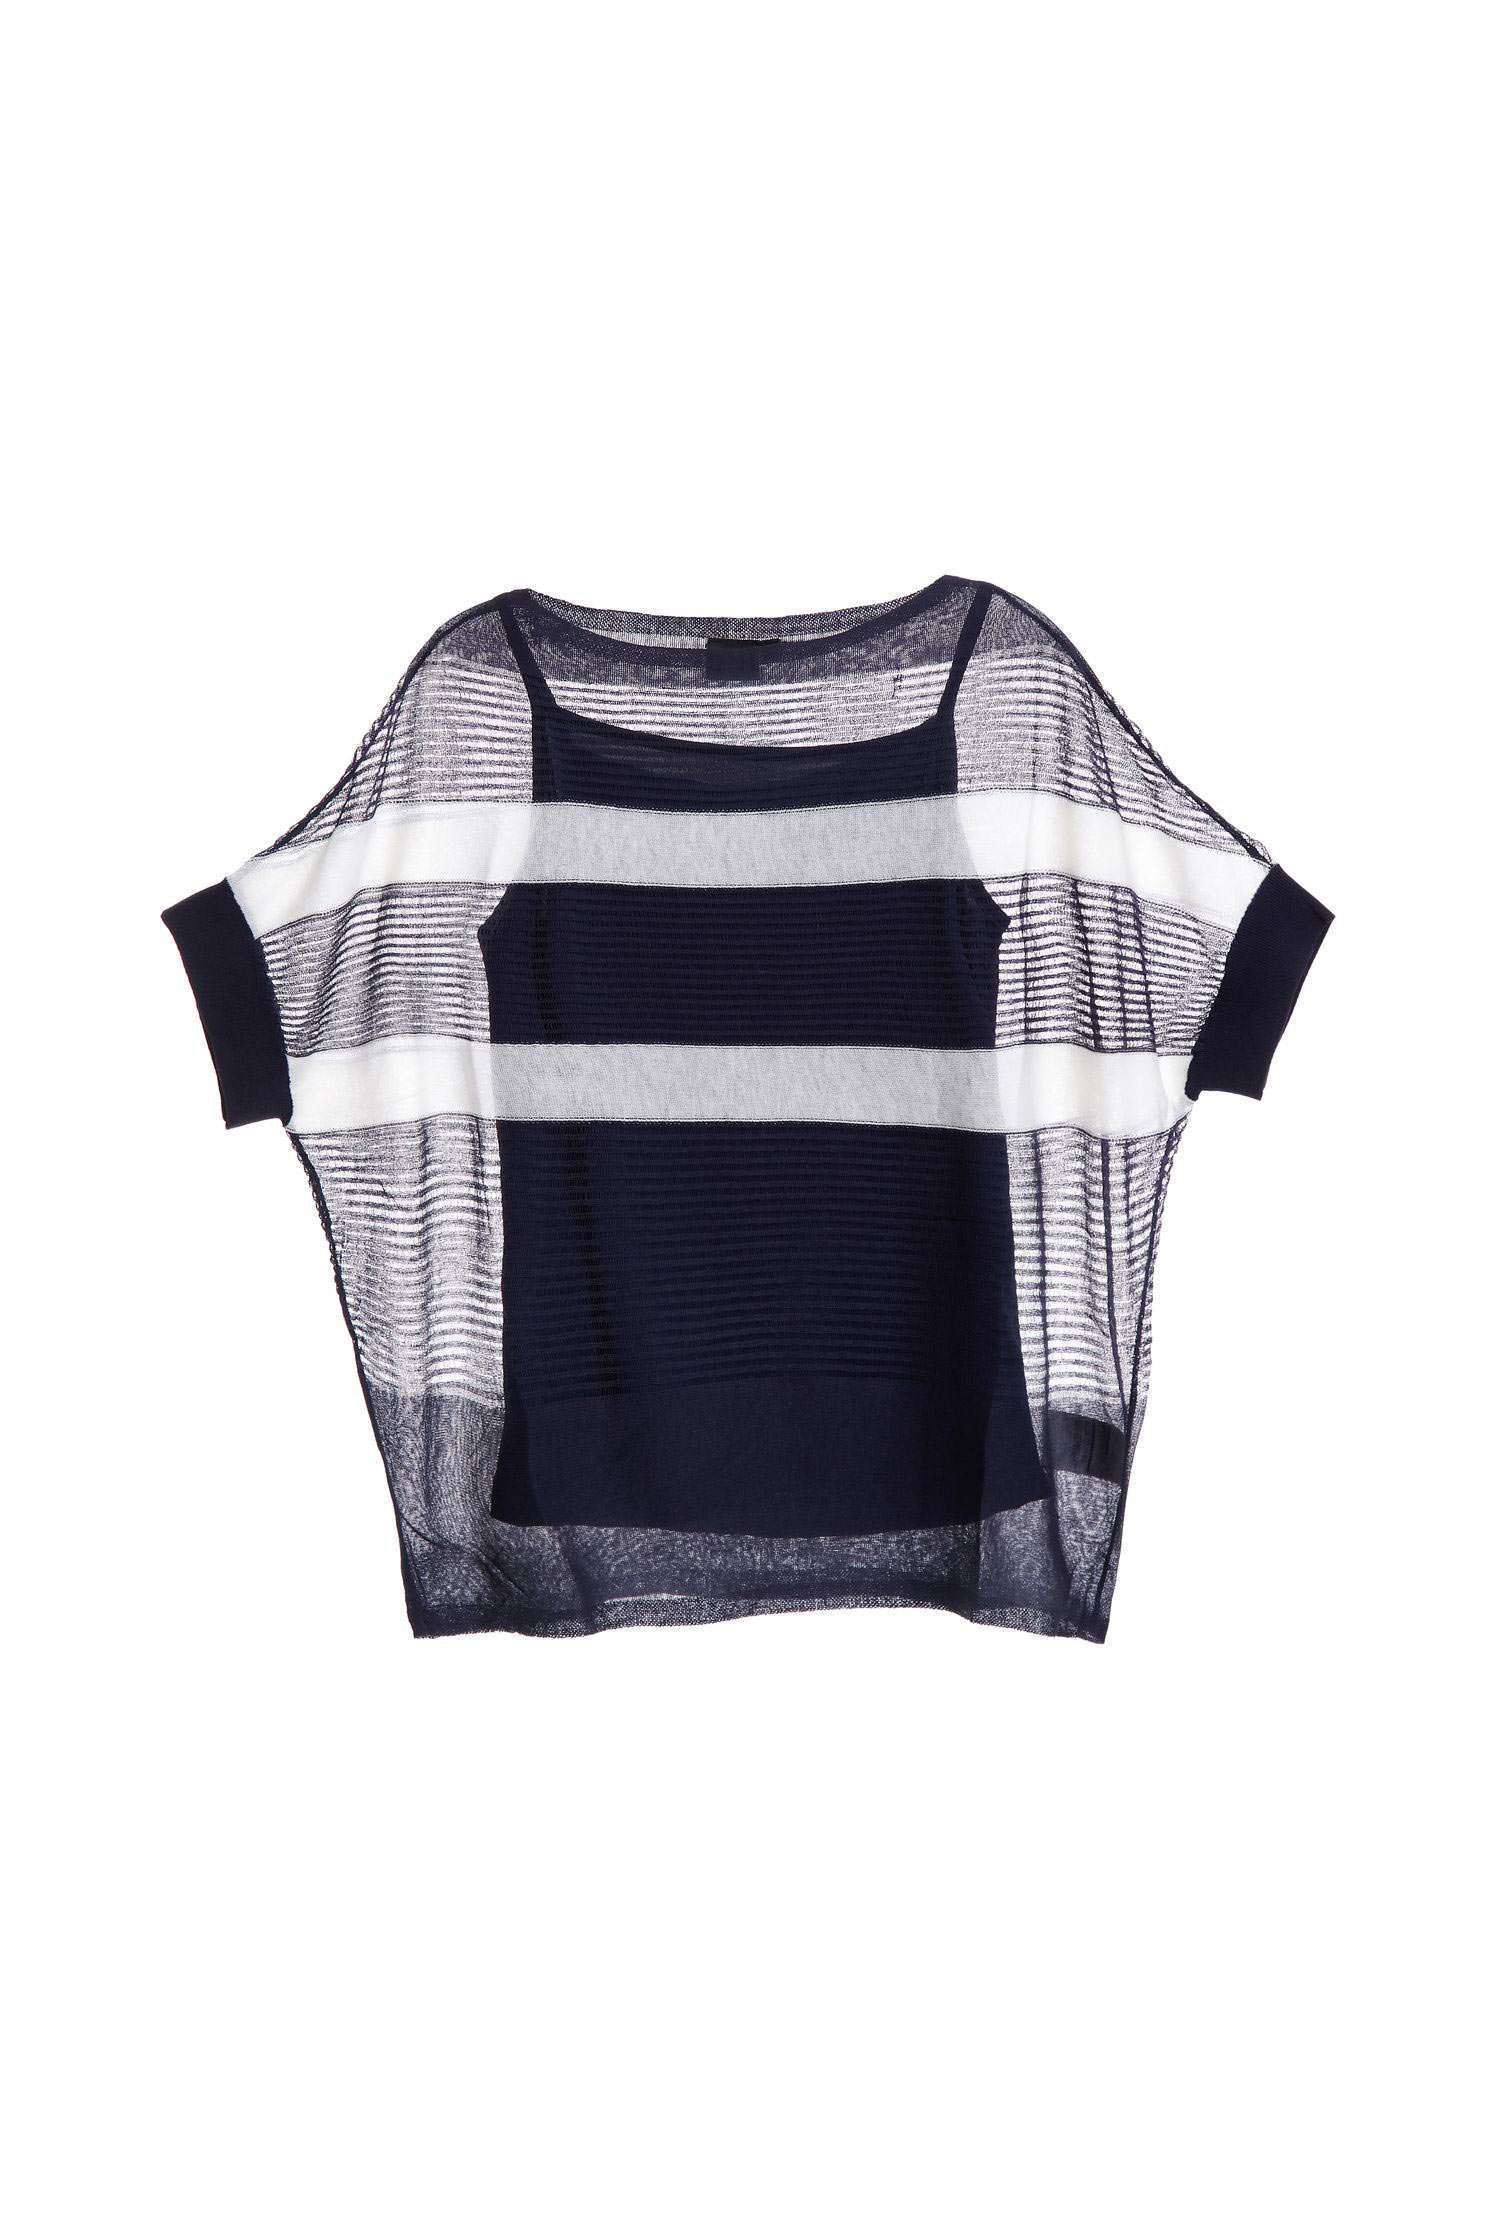 Loose striped knit top